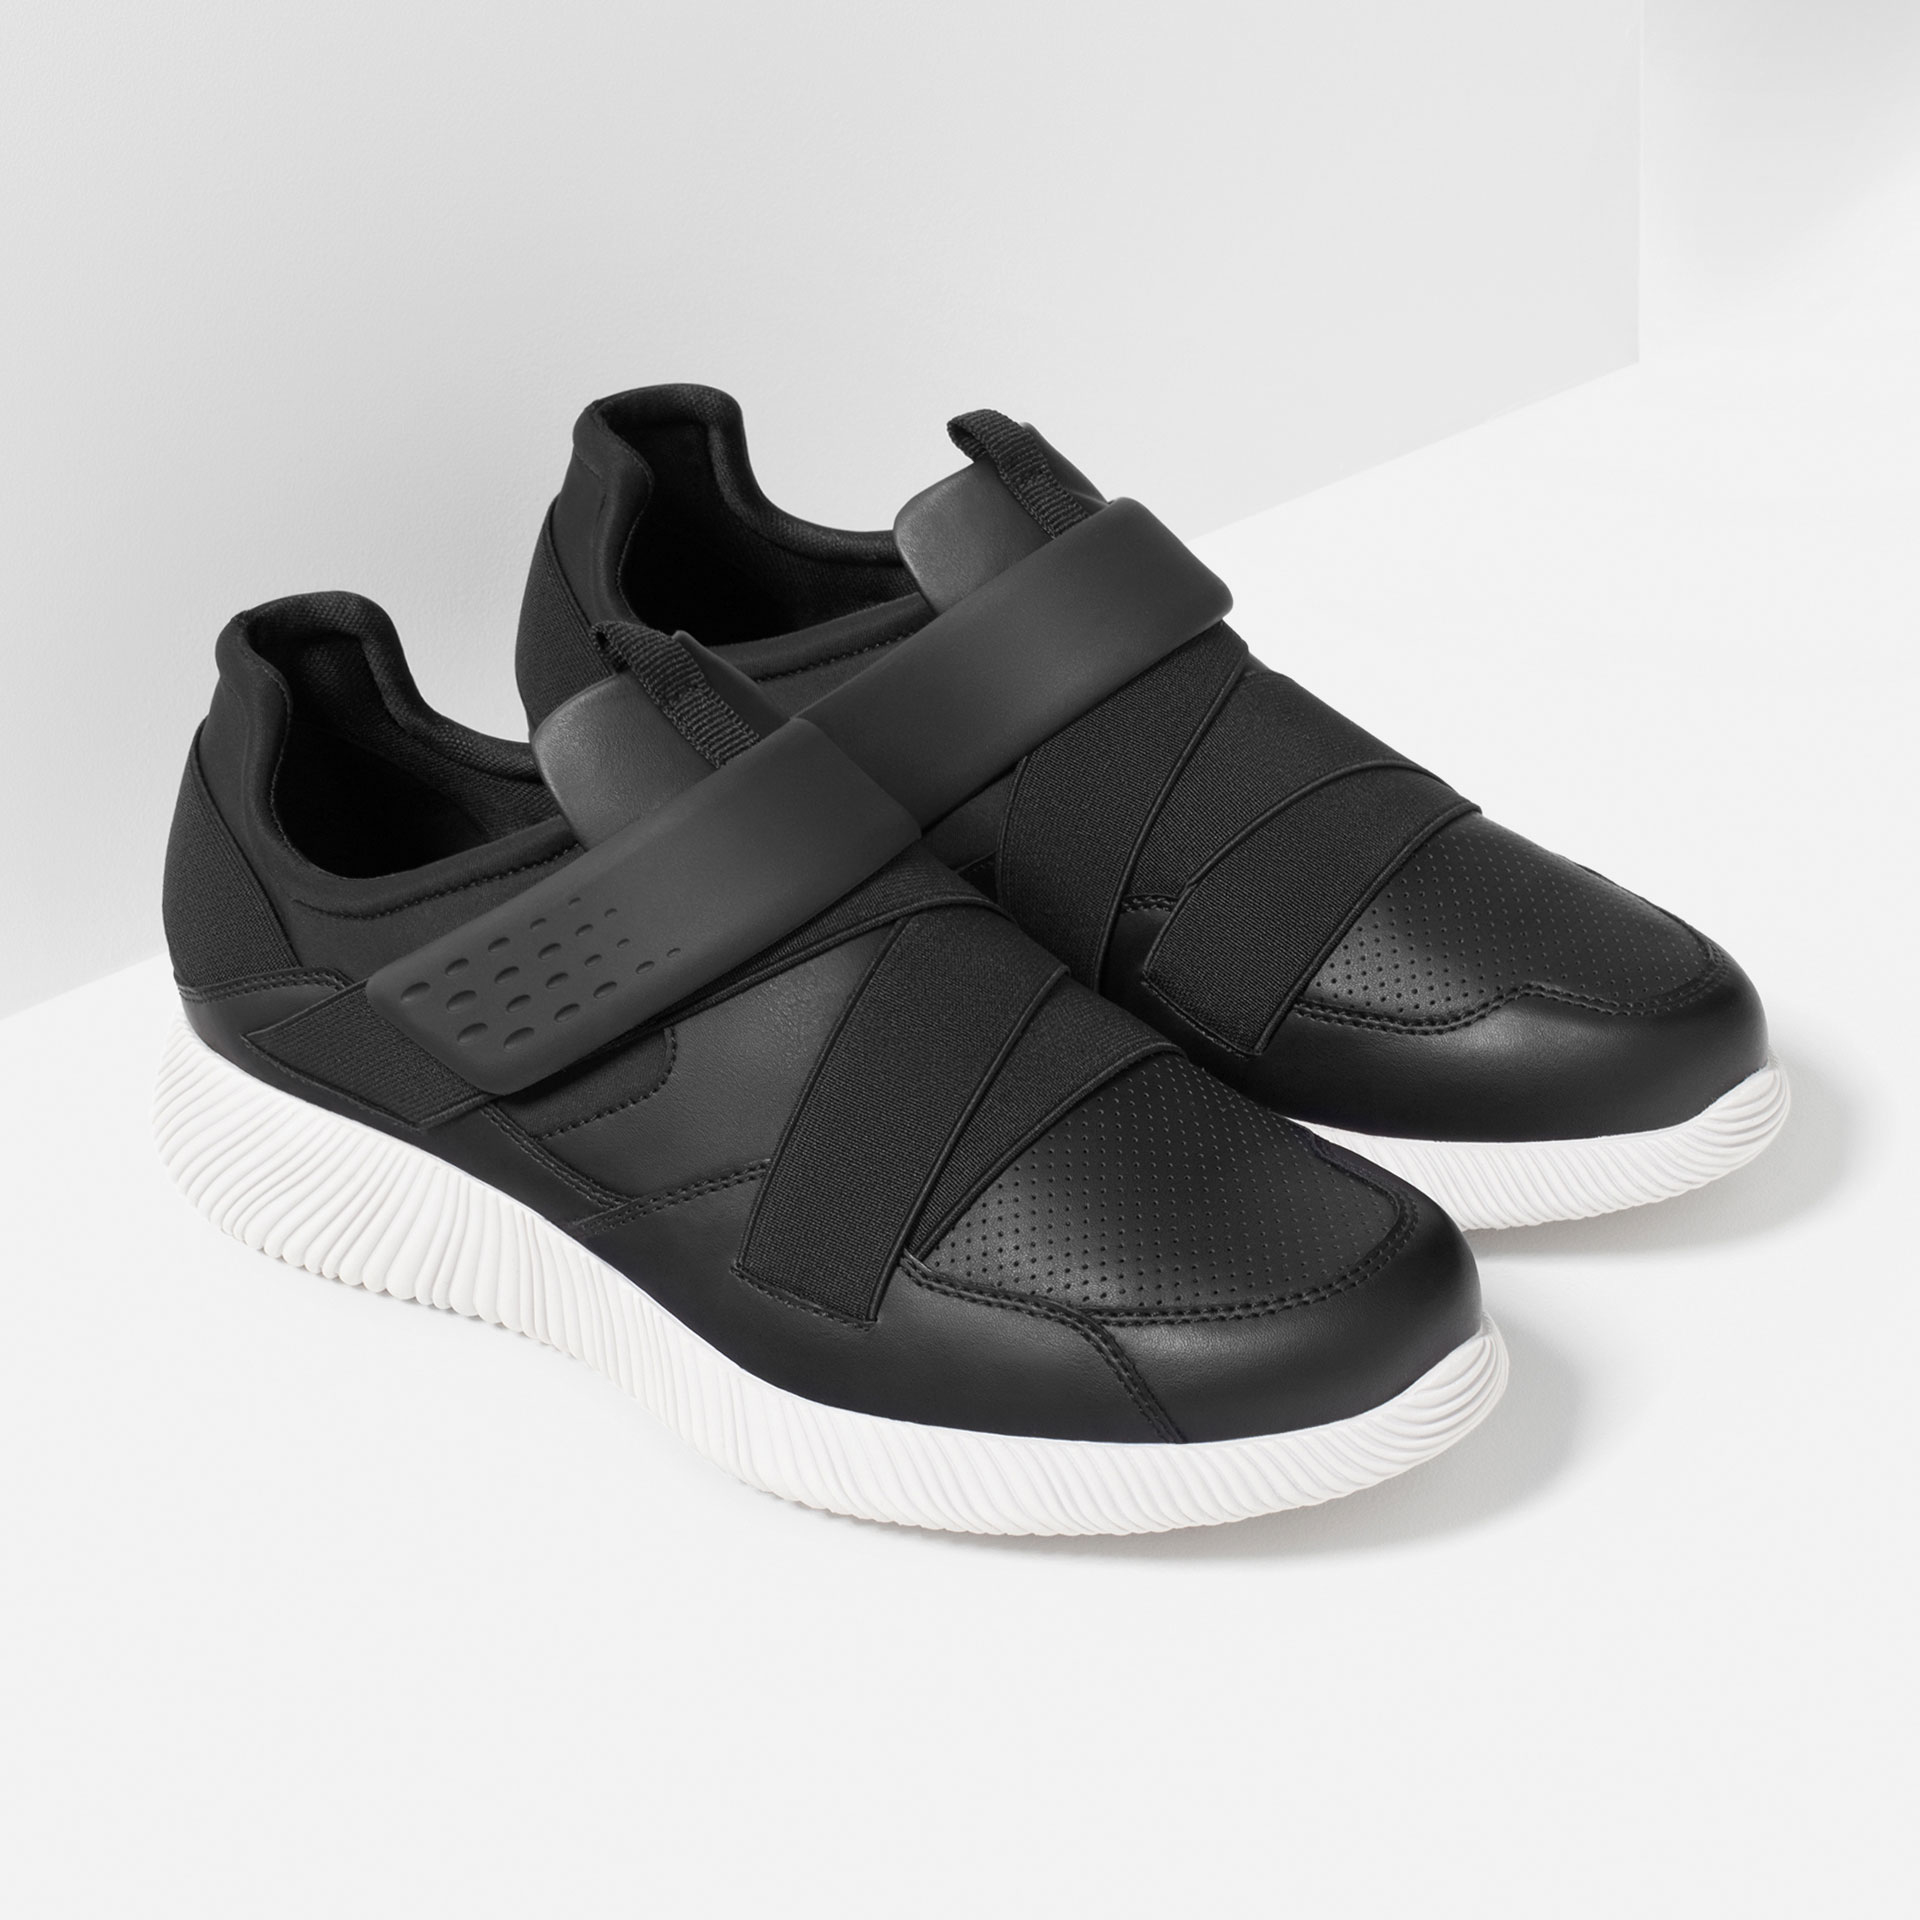 Zara Hook And Loop Sneakers Hook And Loop Sneakers in ...